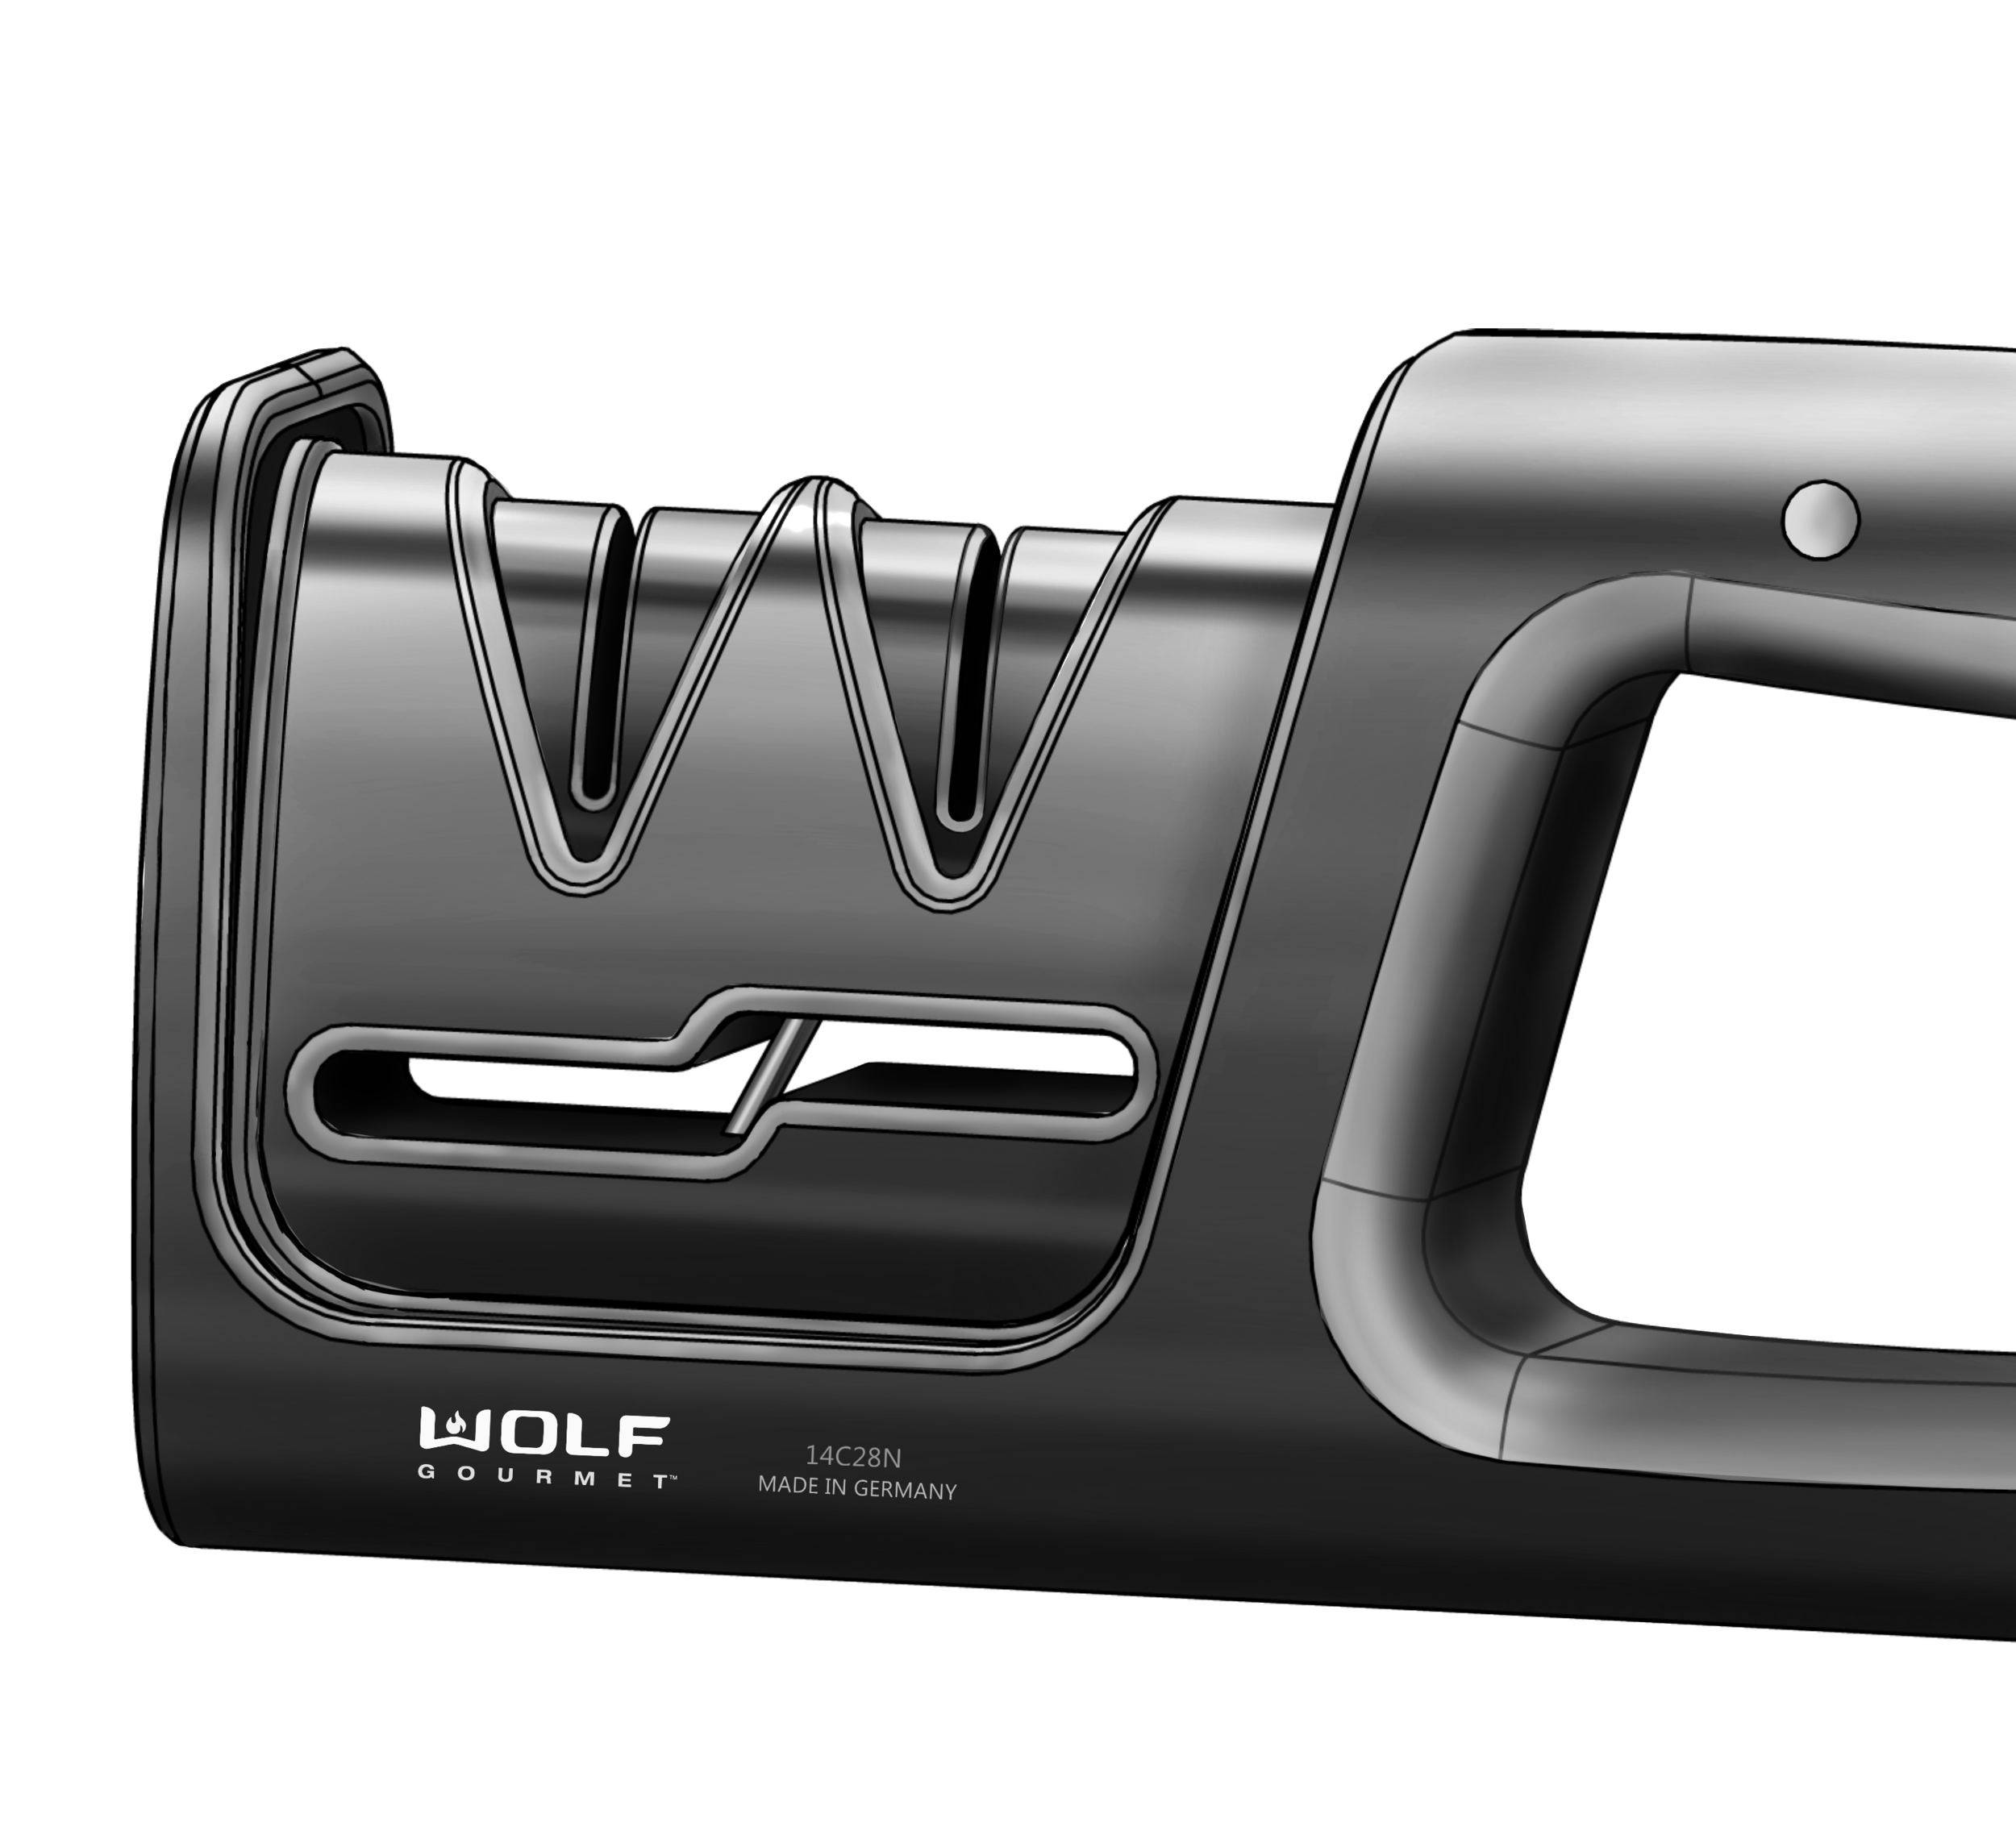 Knife Sharpener   Wolf Gourmet by Hamilton Beach (Internship Project)  Product Design